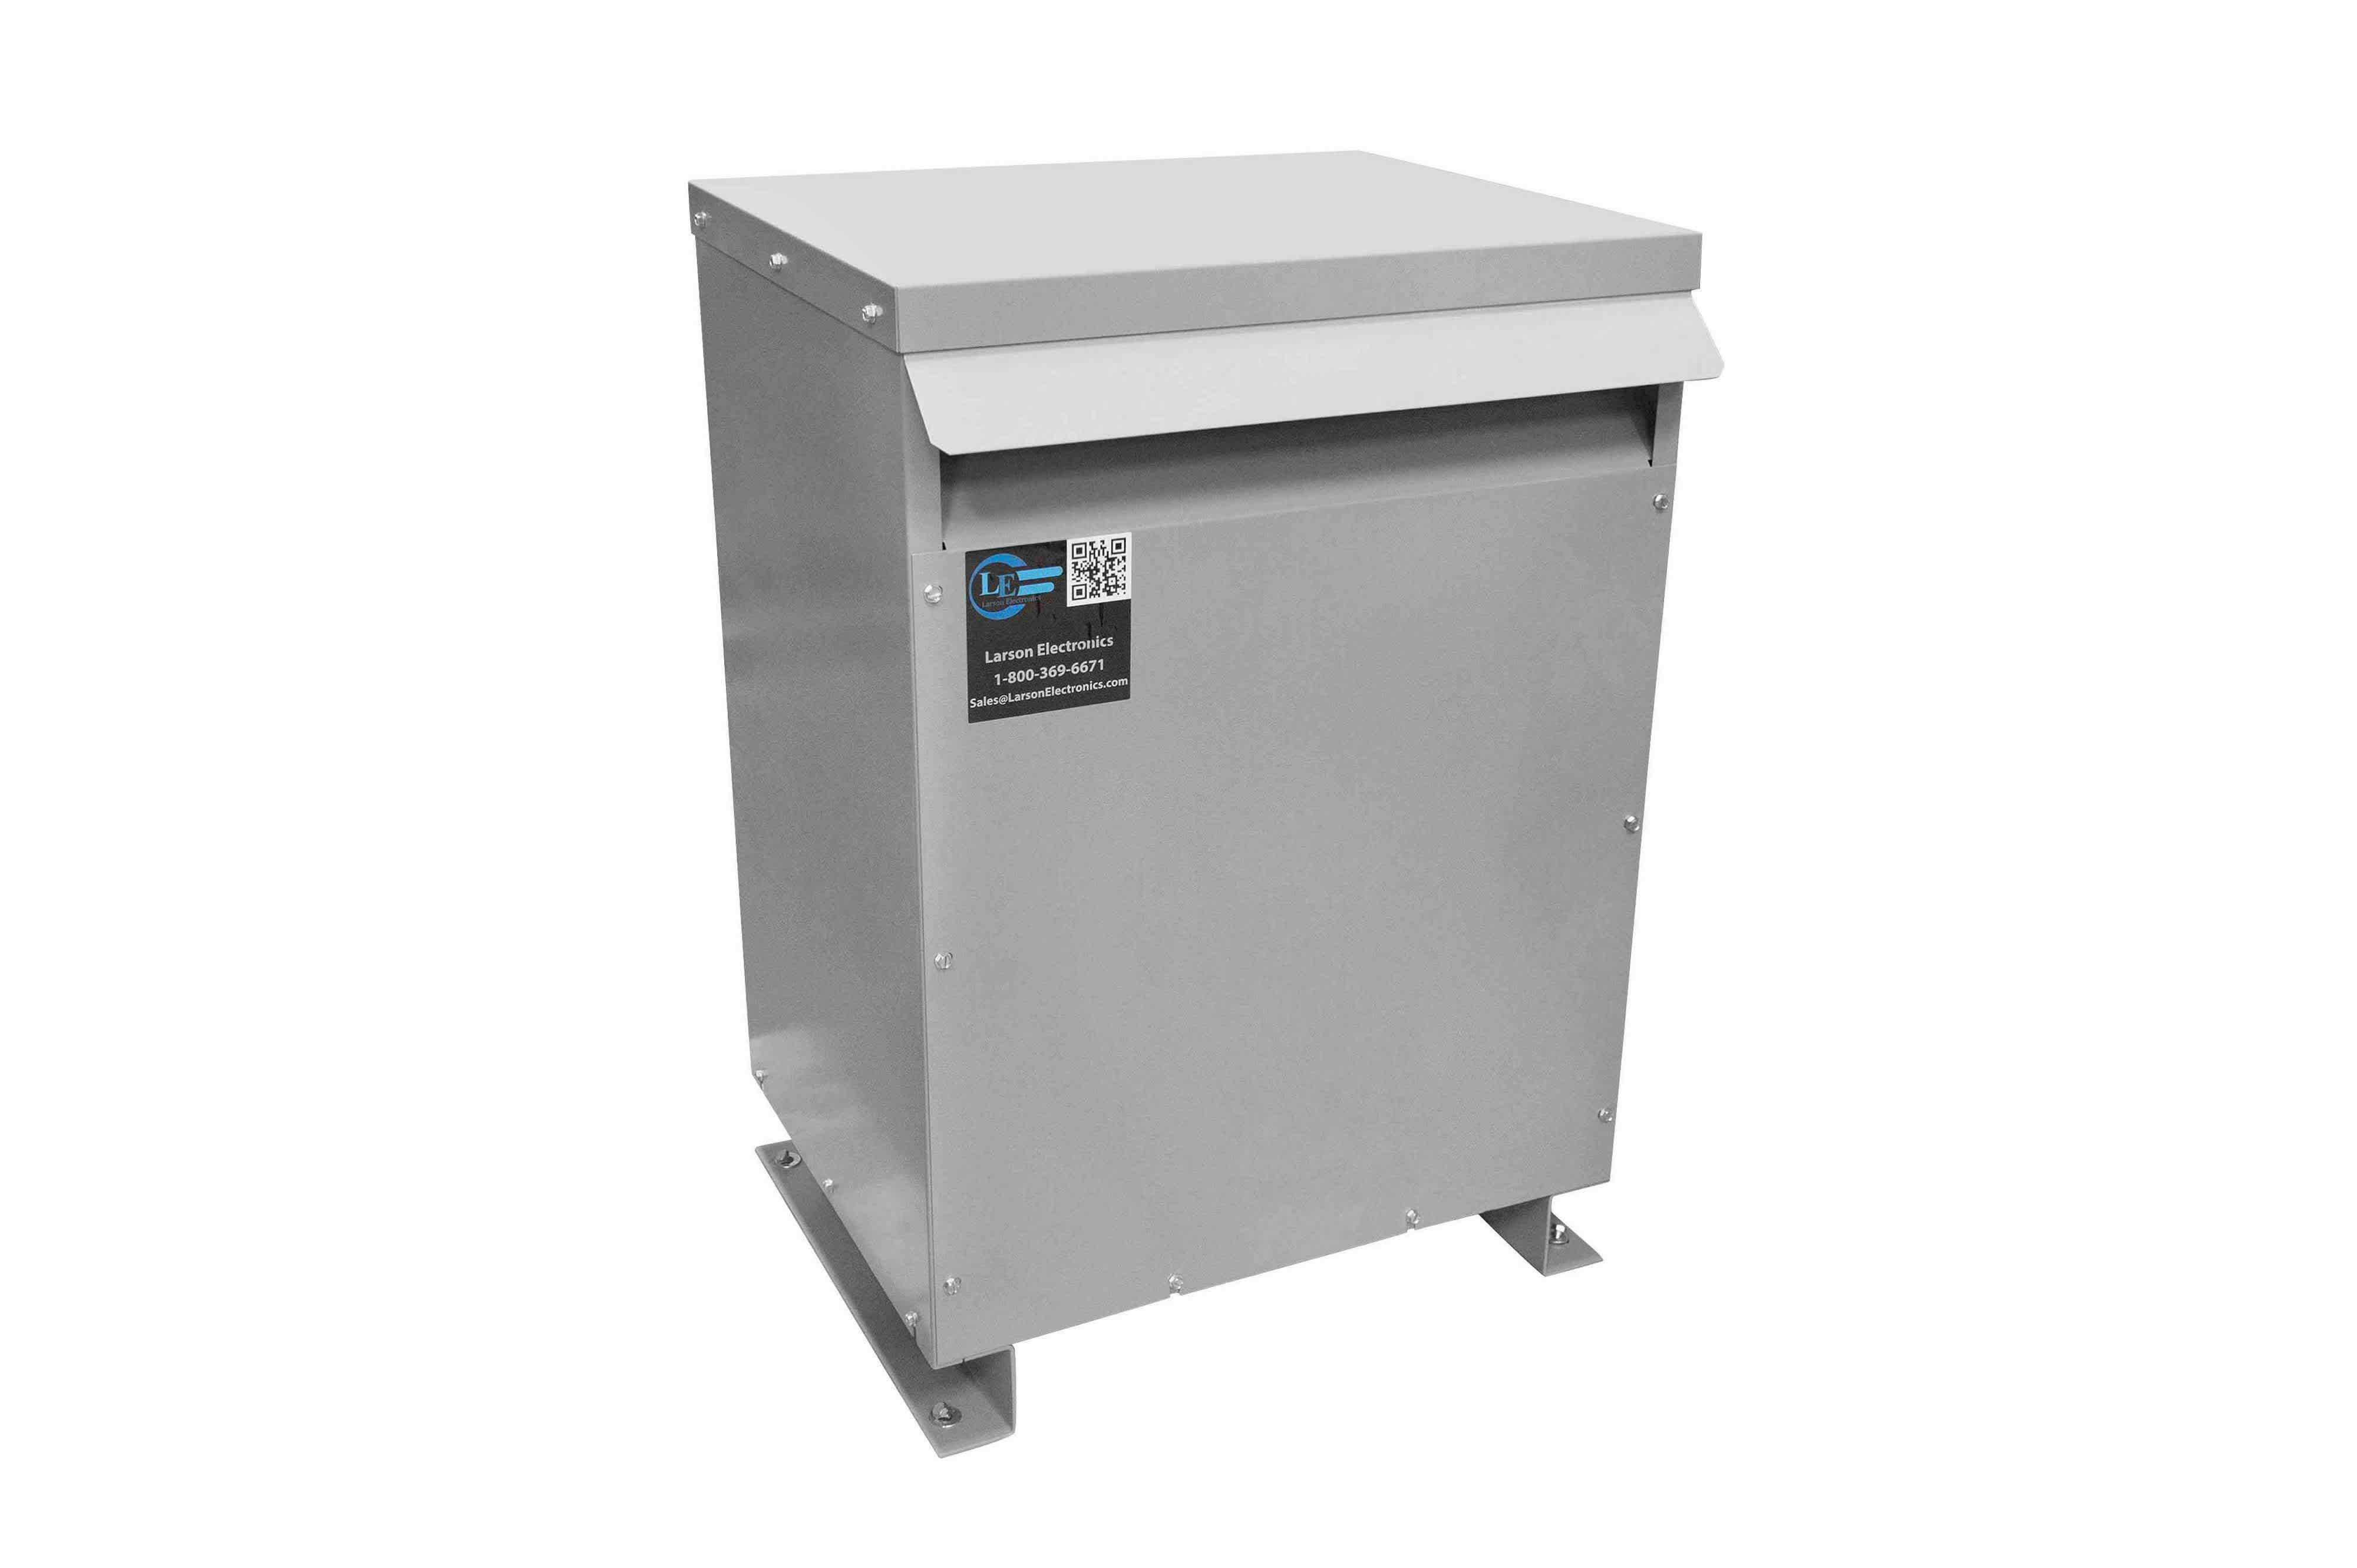 275 kVA 3PH Isolation Transformer, 230V Wye Primary, 480V Delta Secondary, N3R, Ventilated, 60 Hz